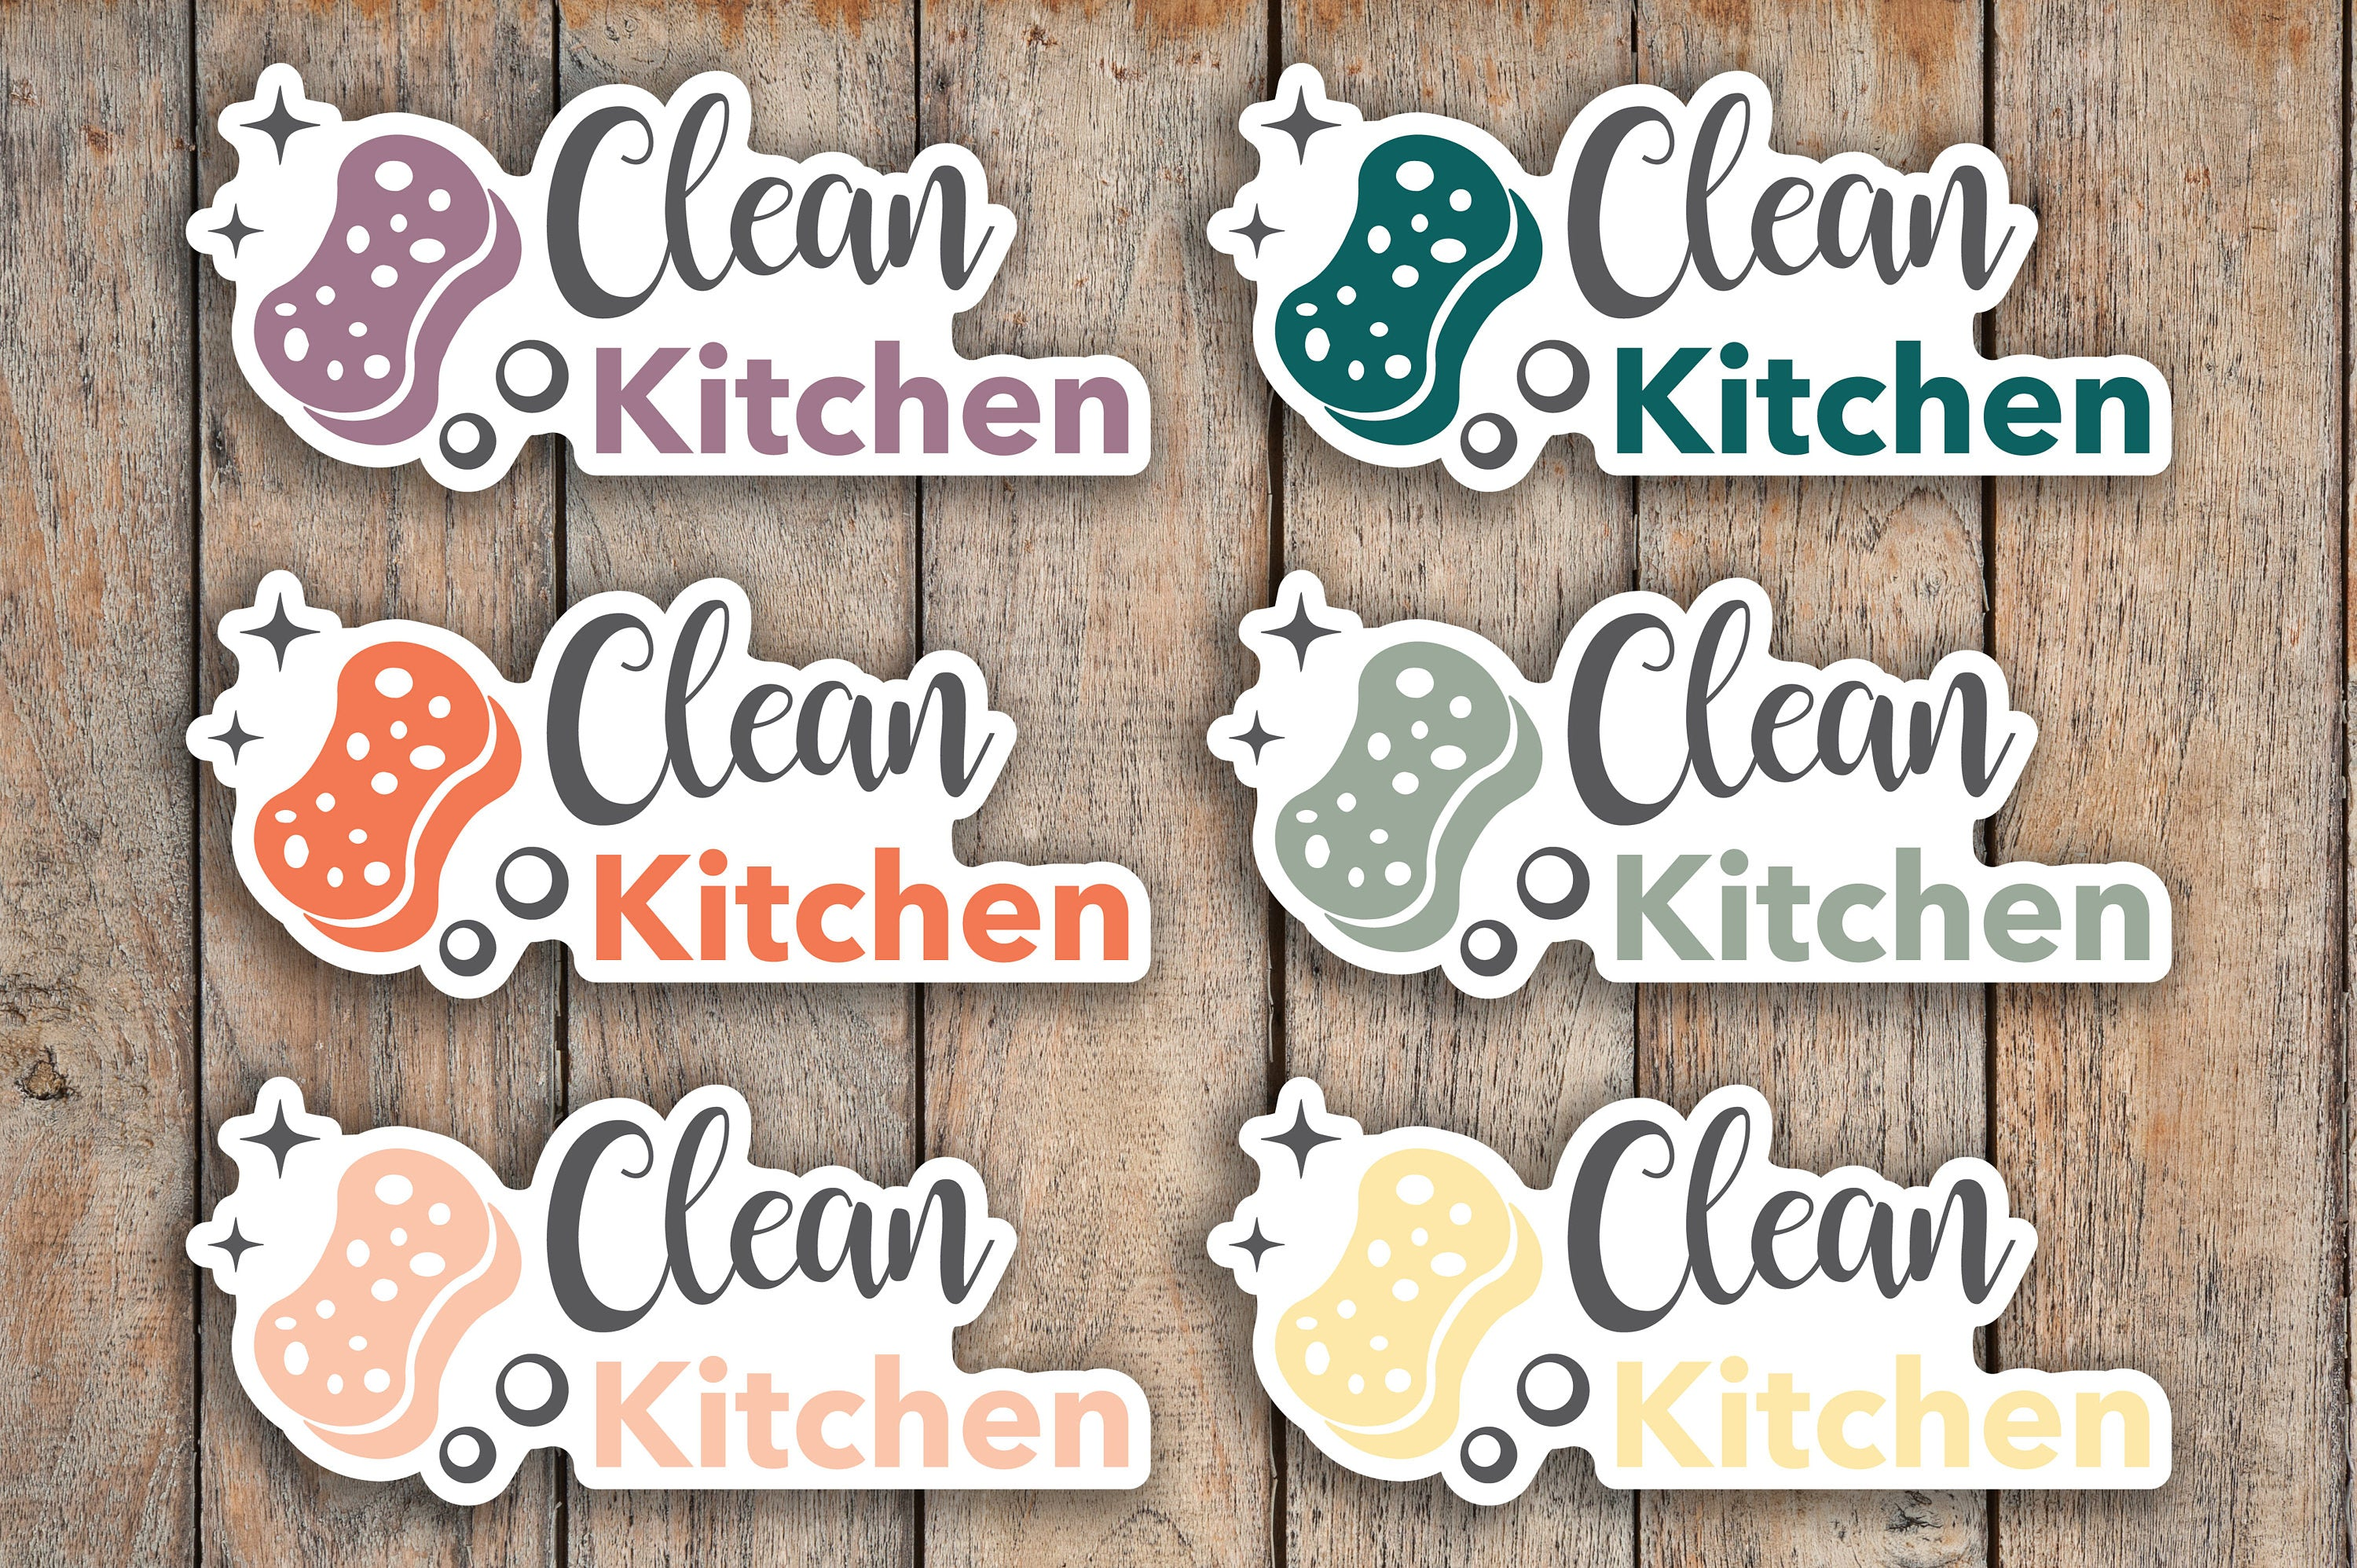 28 Clean Kitchen, Kids Daily Chores, Meal Cleanup, Cleaning, Kids Chores Icon Planner Stickers for 2018 inkWELL Press Planners IWP-Q180